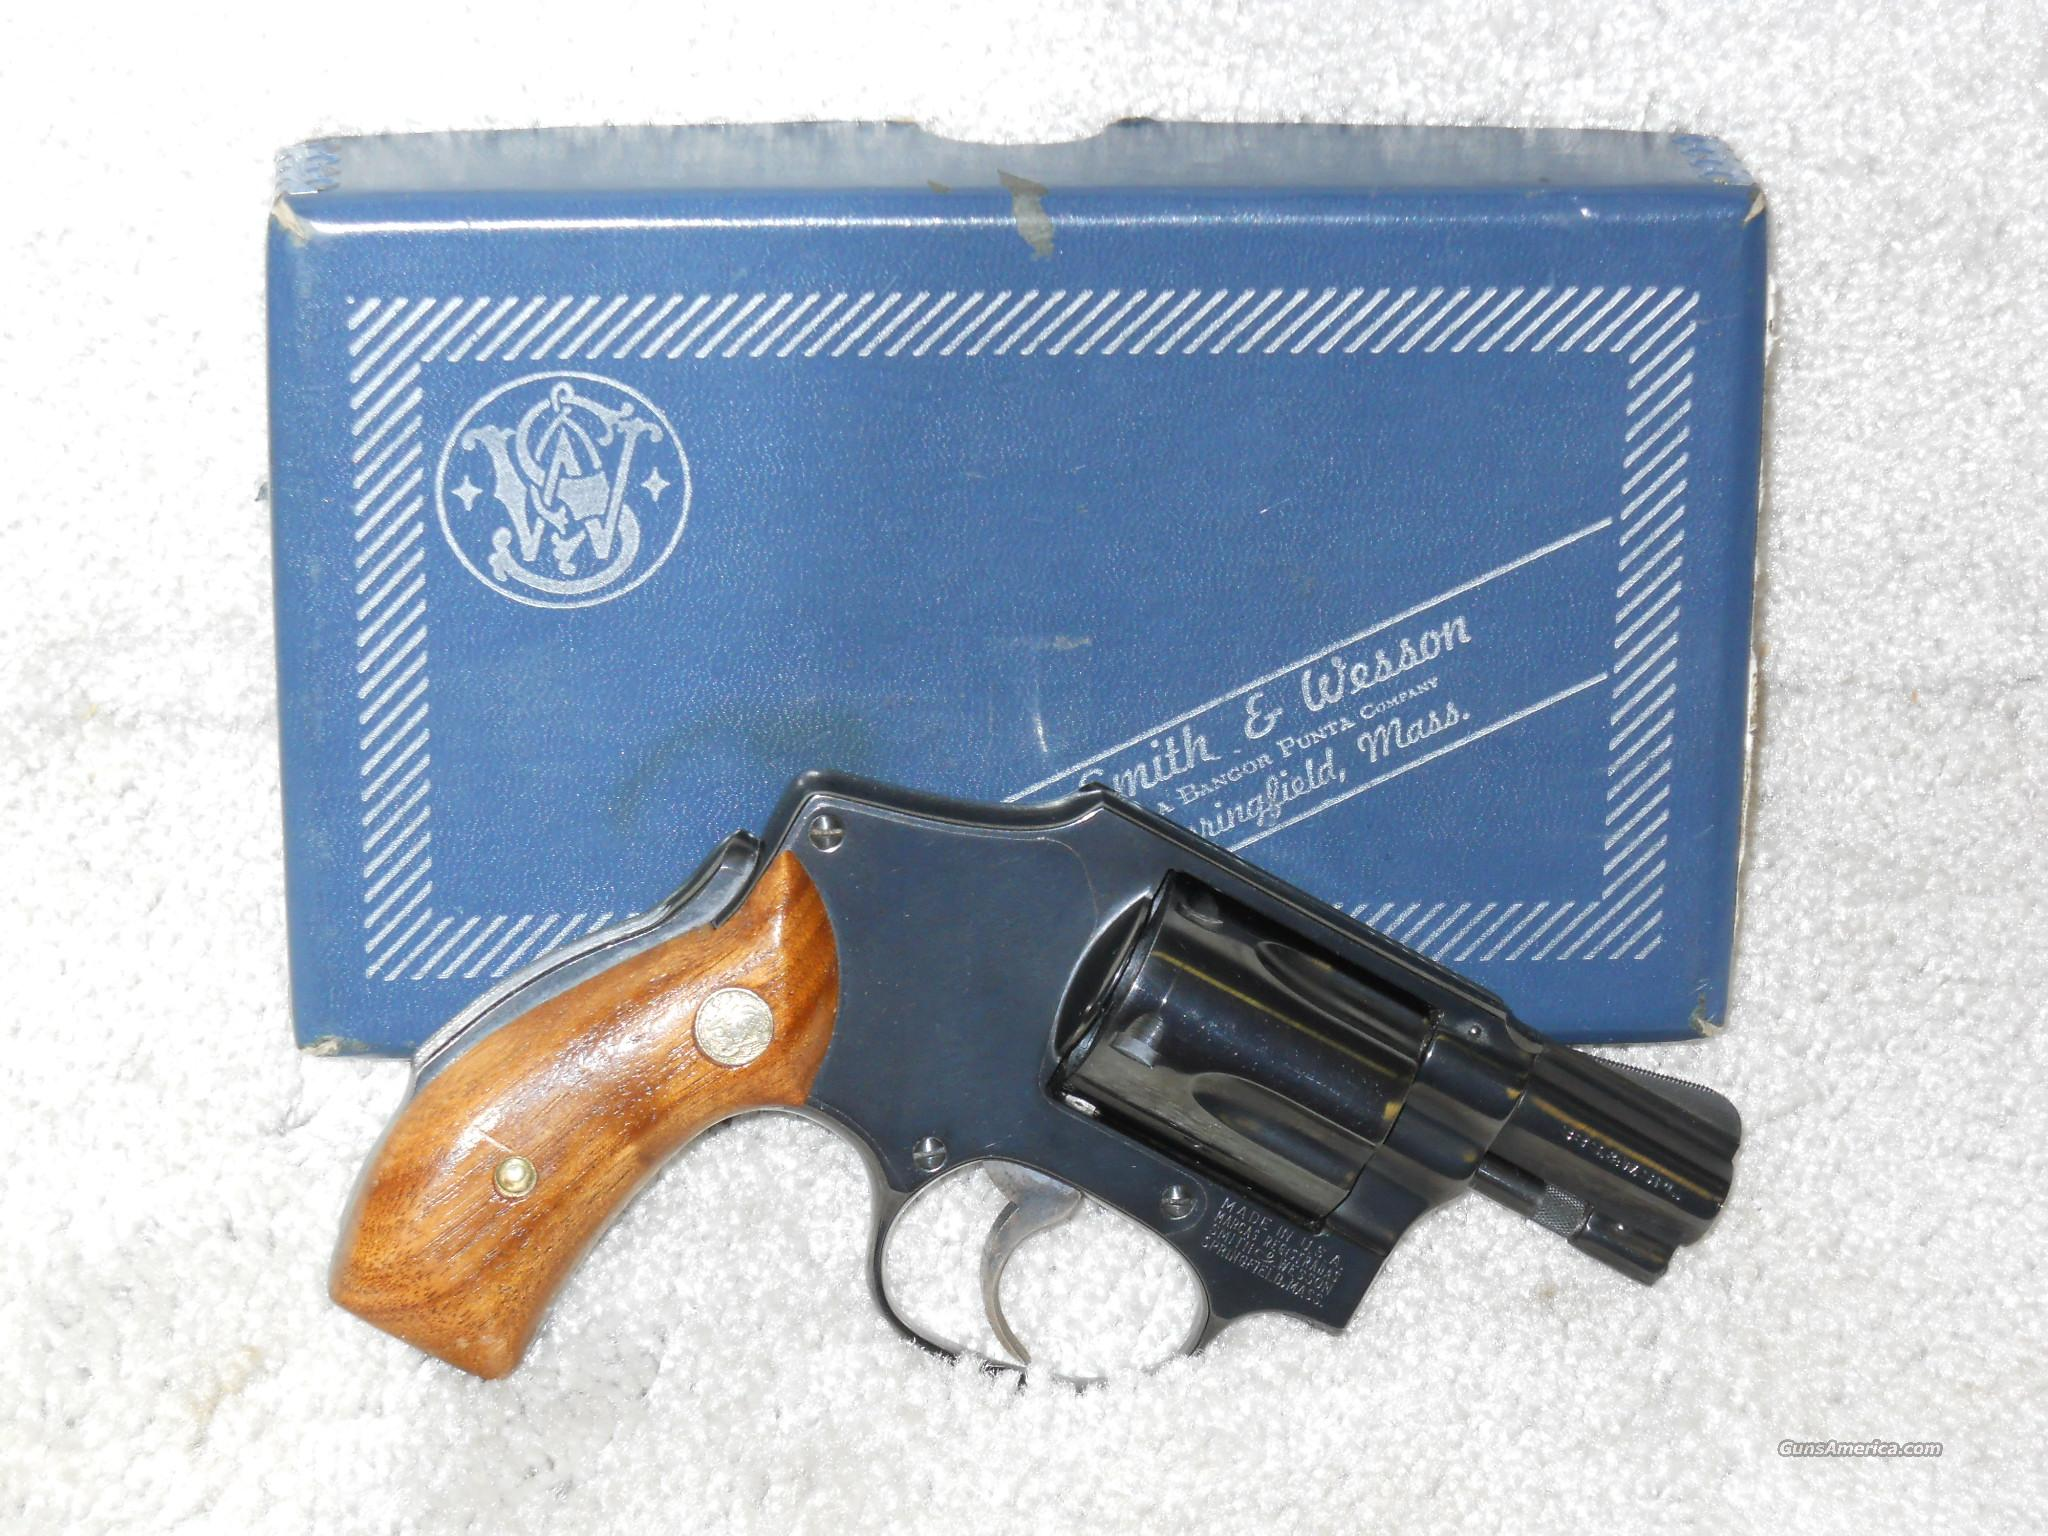 Smith & Wesson, Model 40, Cal.38 spl.  Guns > Pistols > Smith & Wesson Revolvers > Pocket Pistols